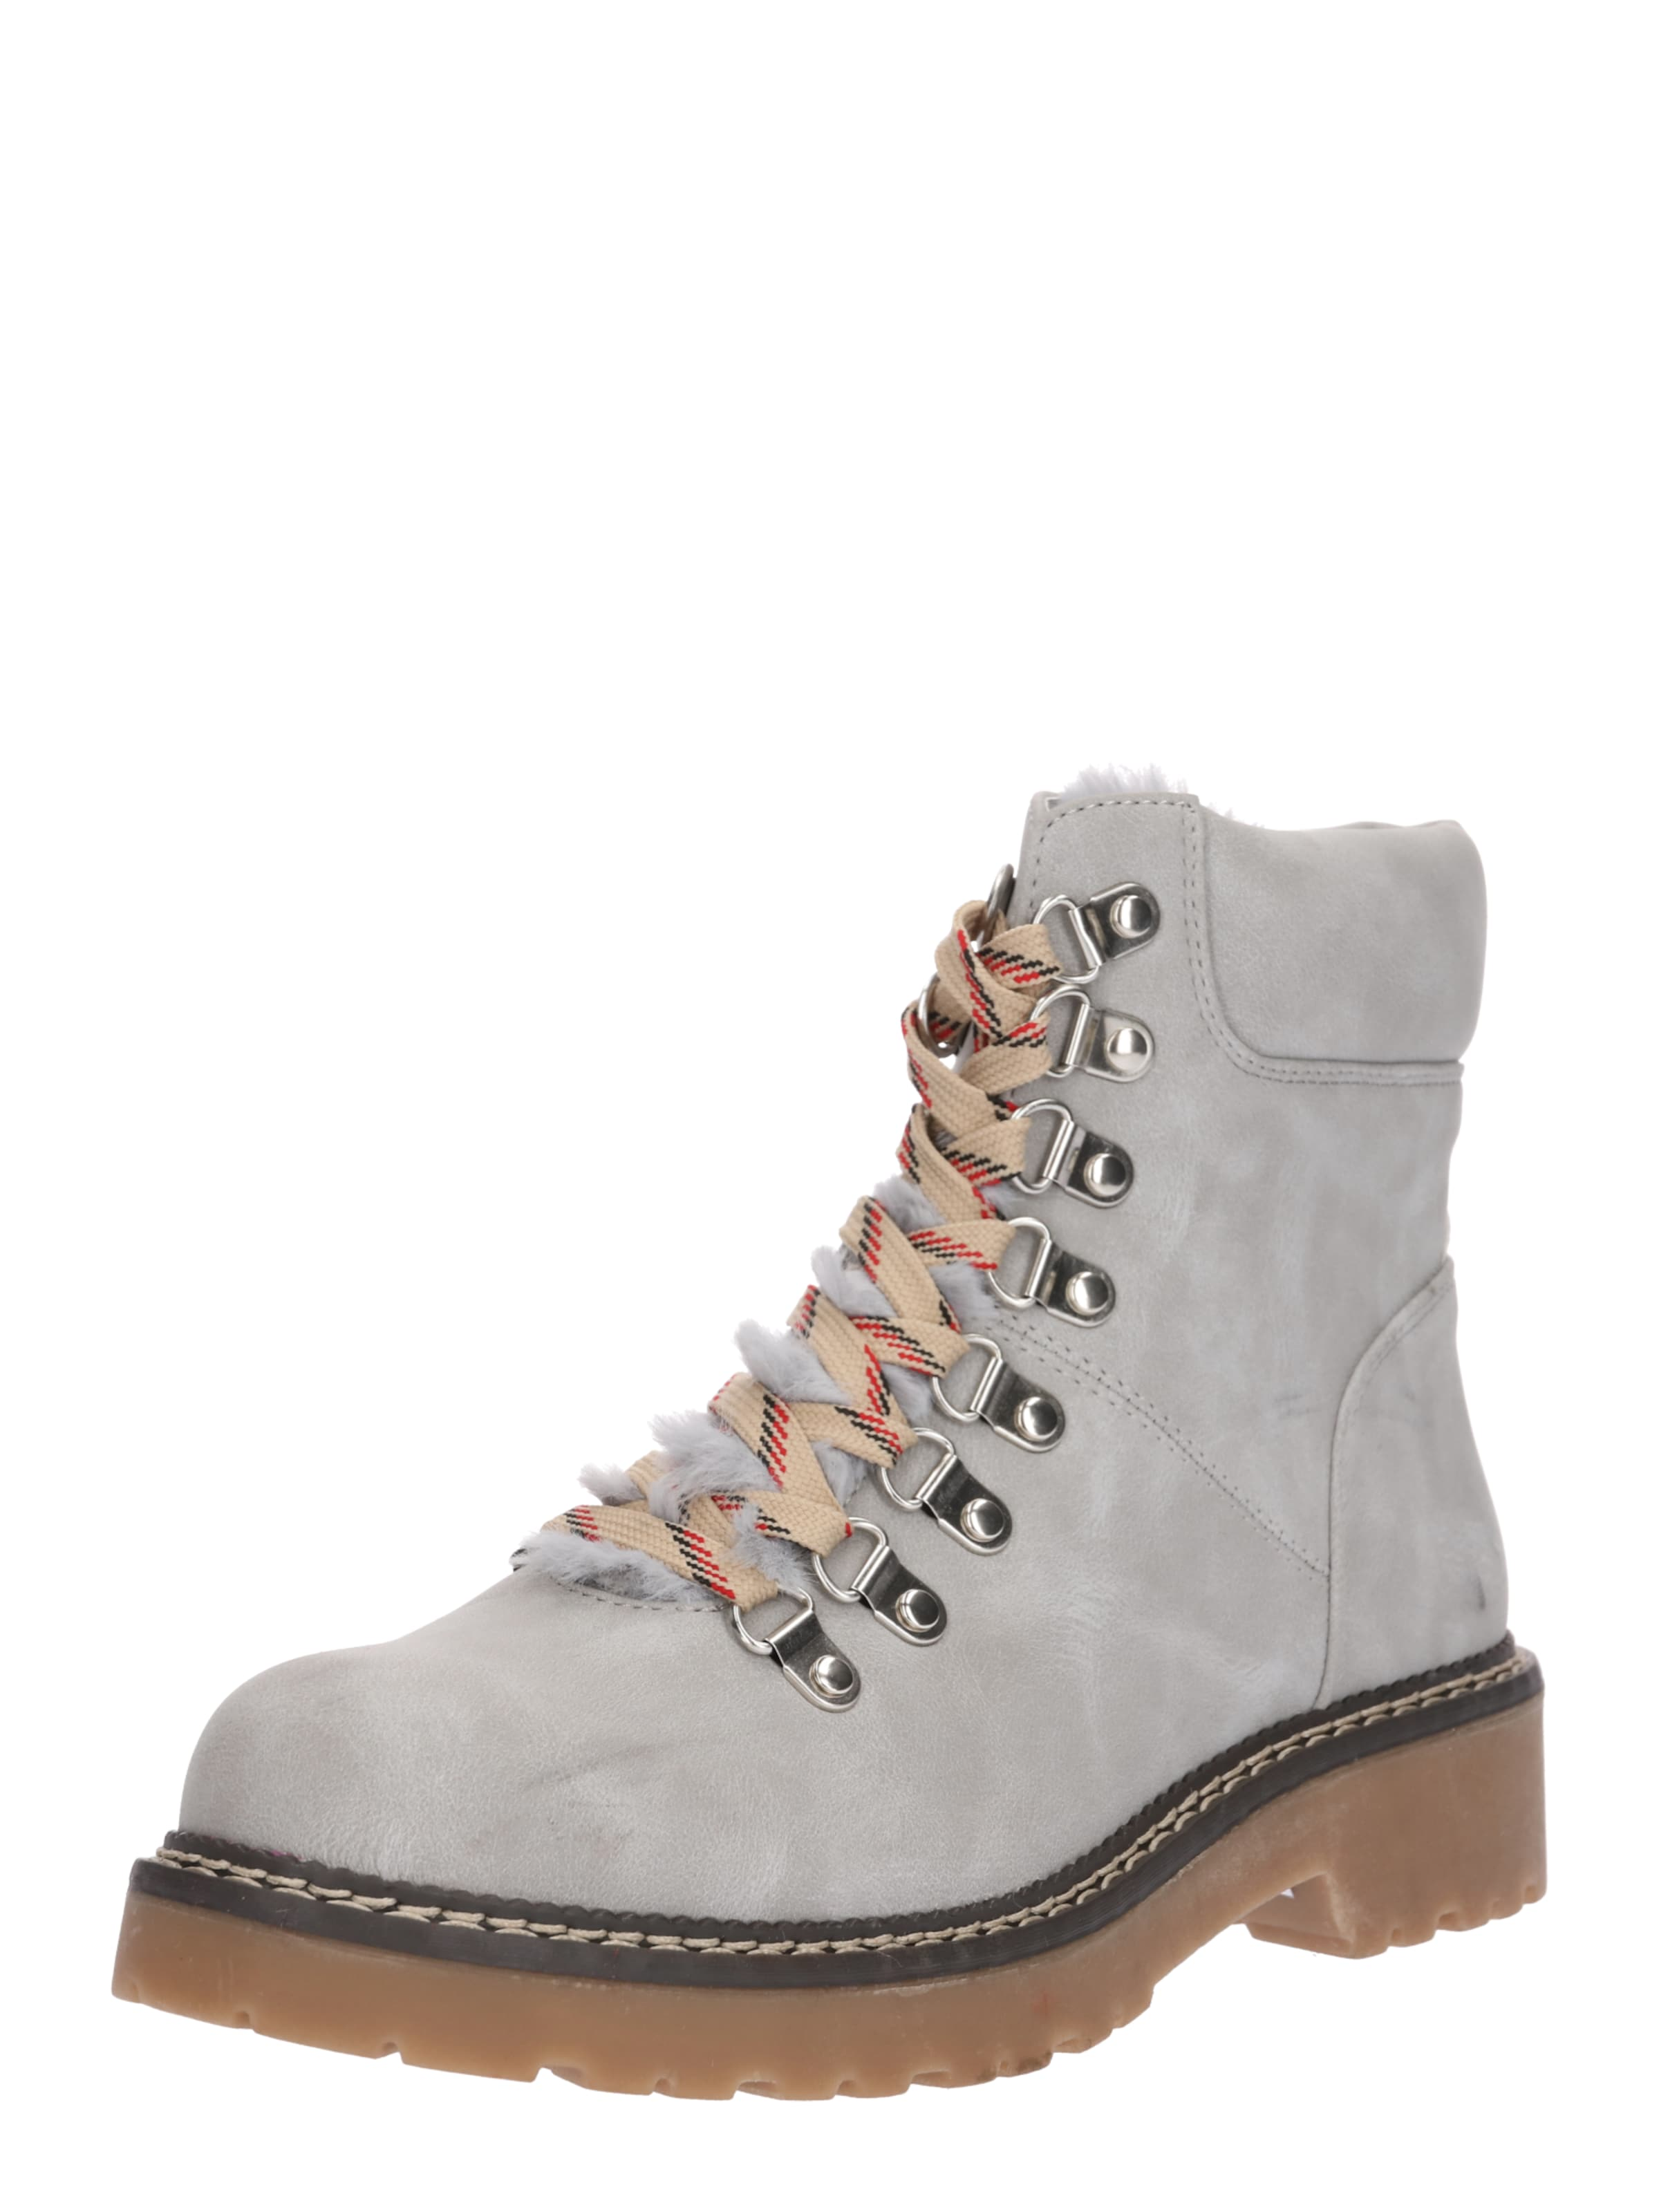 'luzi' Bottines À You Gris En About Lacets OwnP80kX